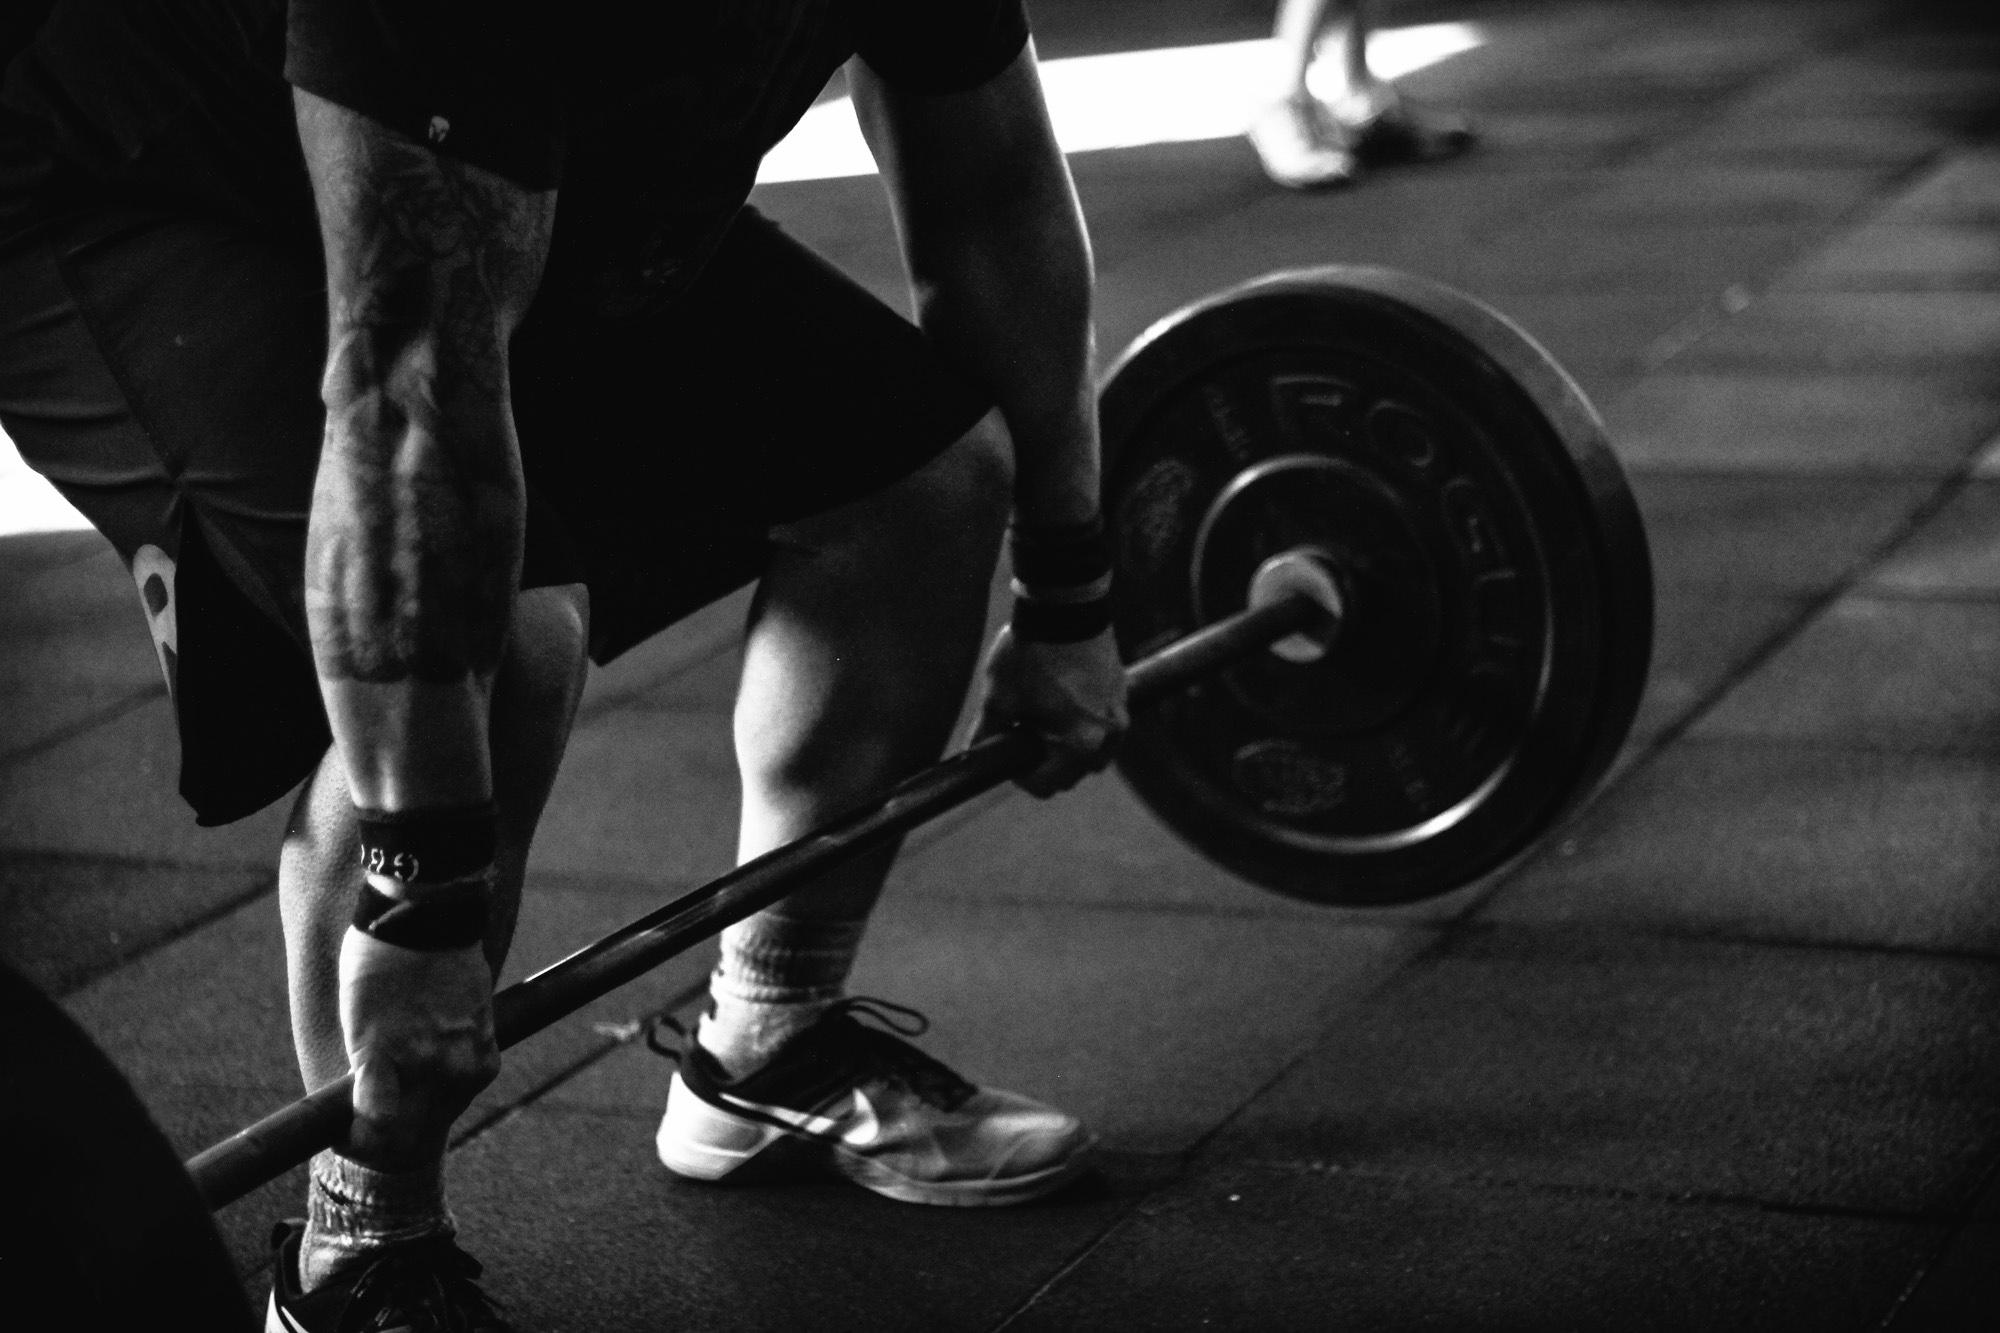 Weight Lifting Wallpaper Iphone 500 Amazing Fitness Photos 183 Pexels 183 Free Stock Photos